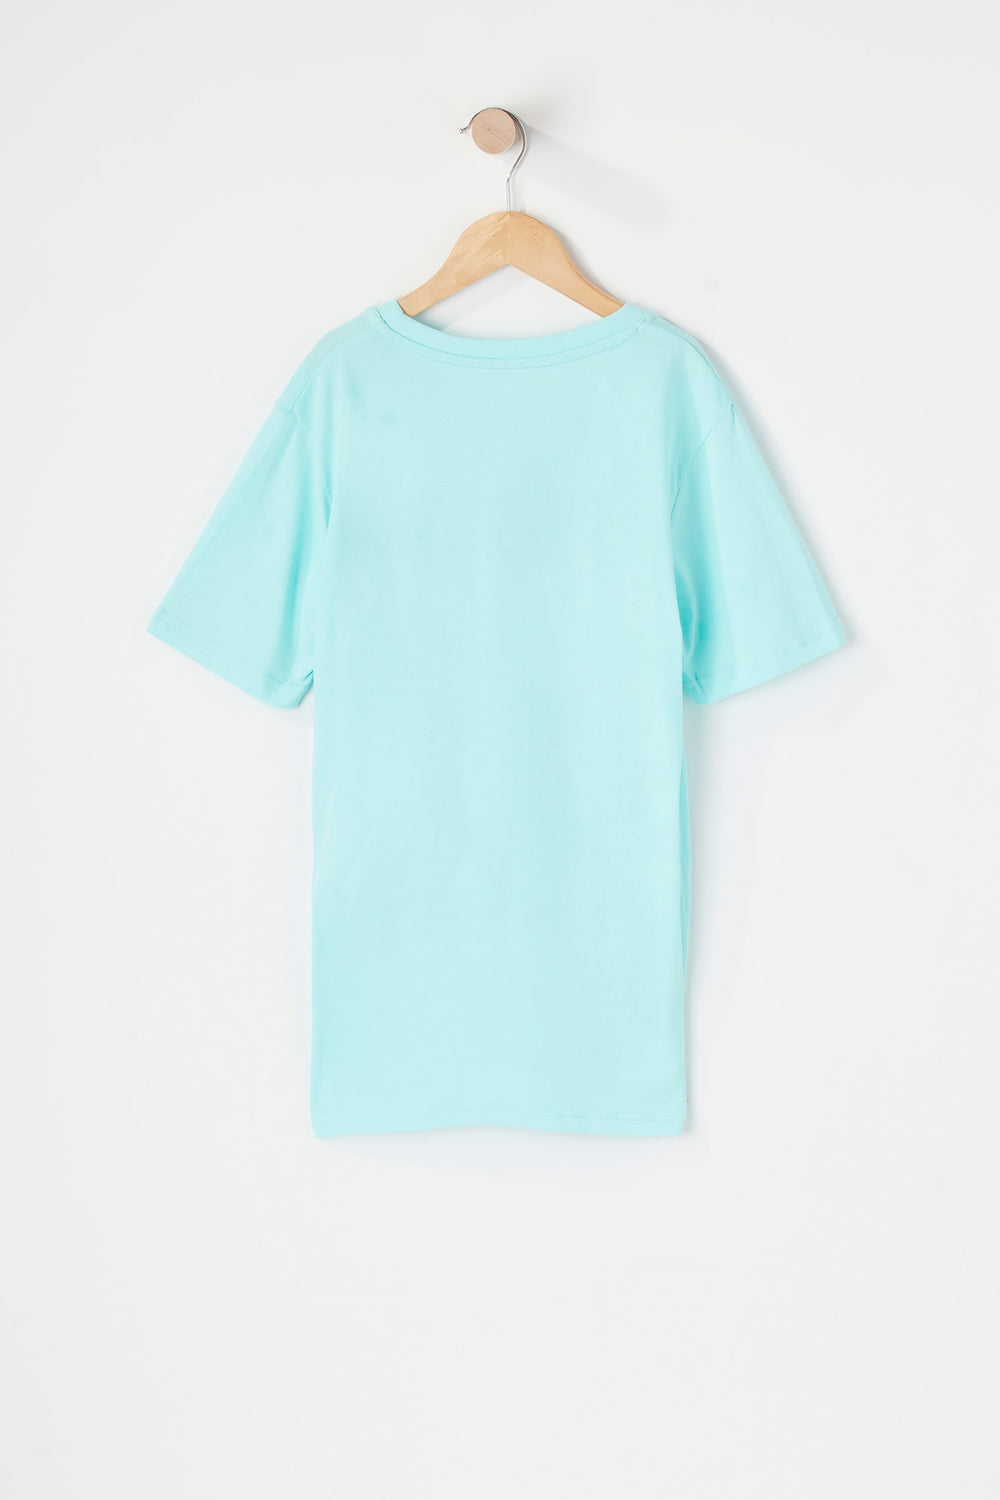 T-Shirt Zoo York Junior Turquoise